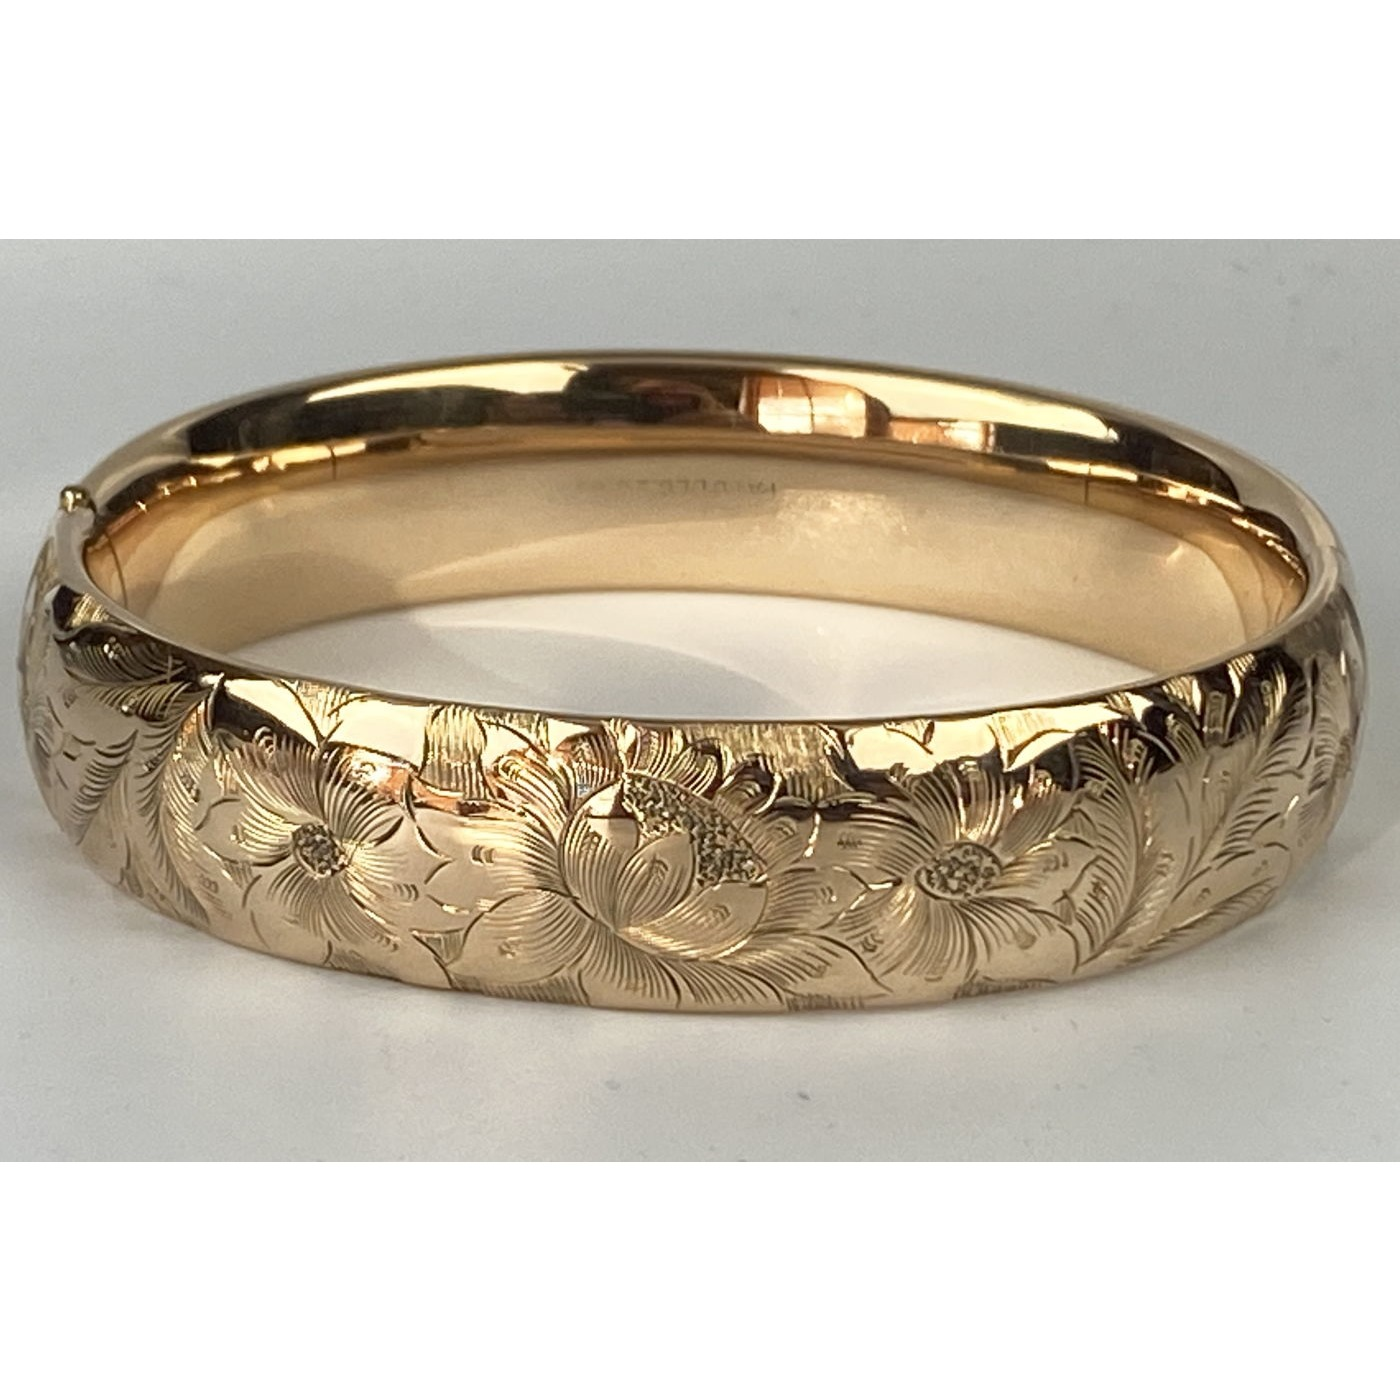 Medium Width Highly Decorative Floral Engagement Bangle